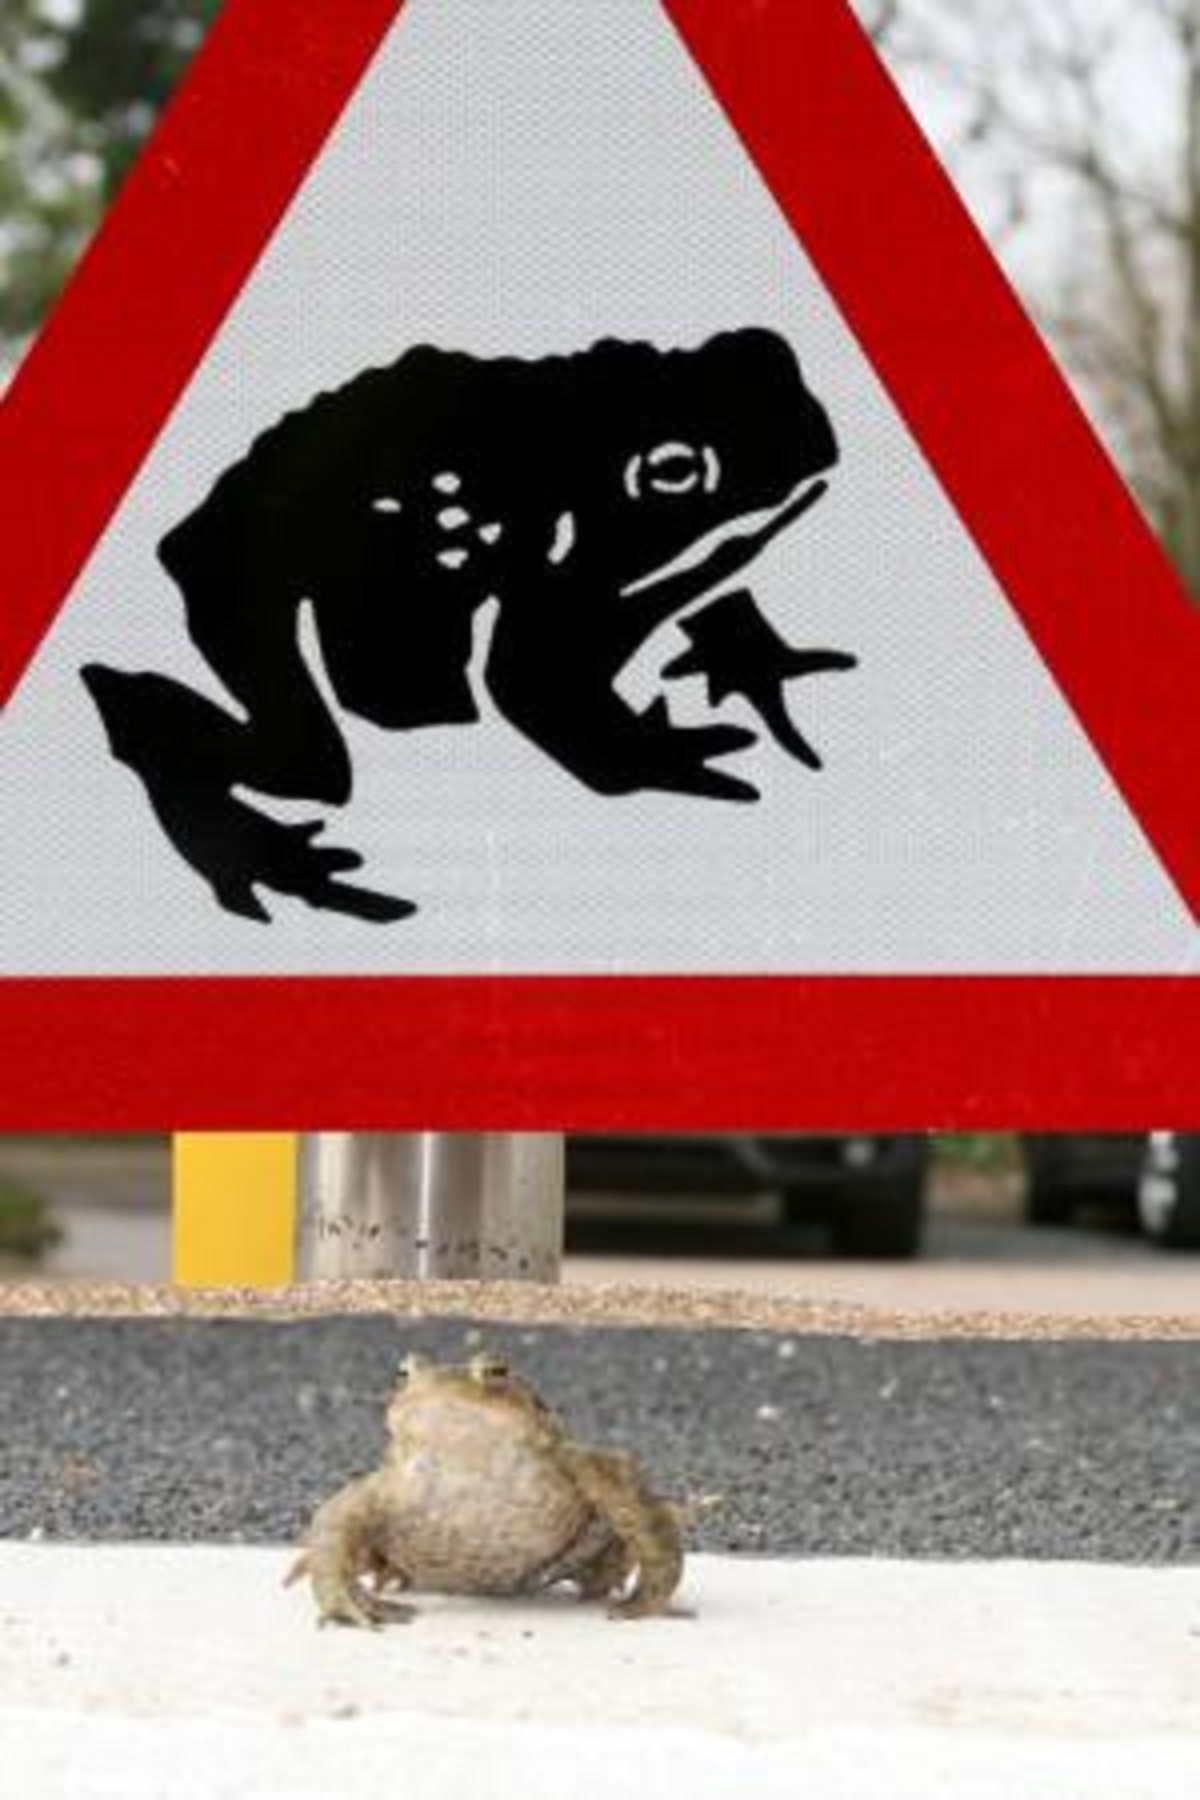 Volunteers needed to save the toads from crossing the road.